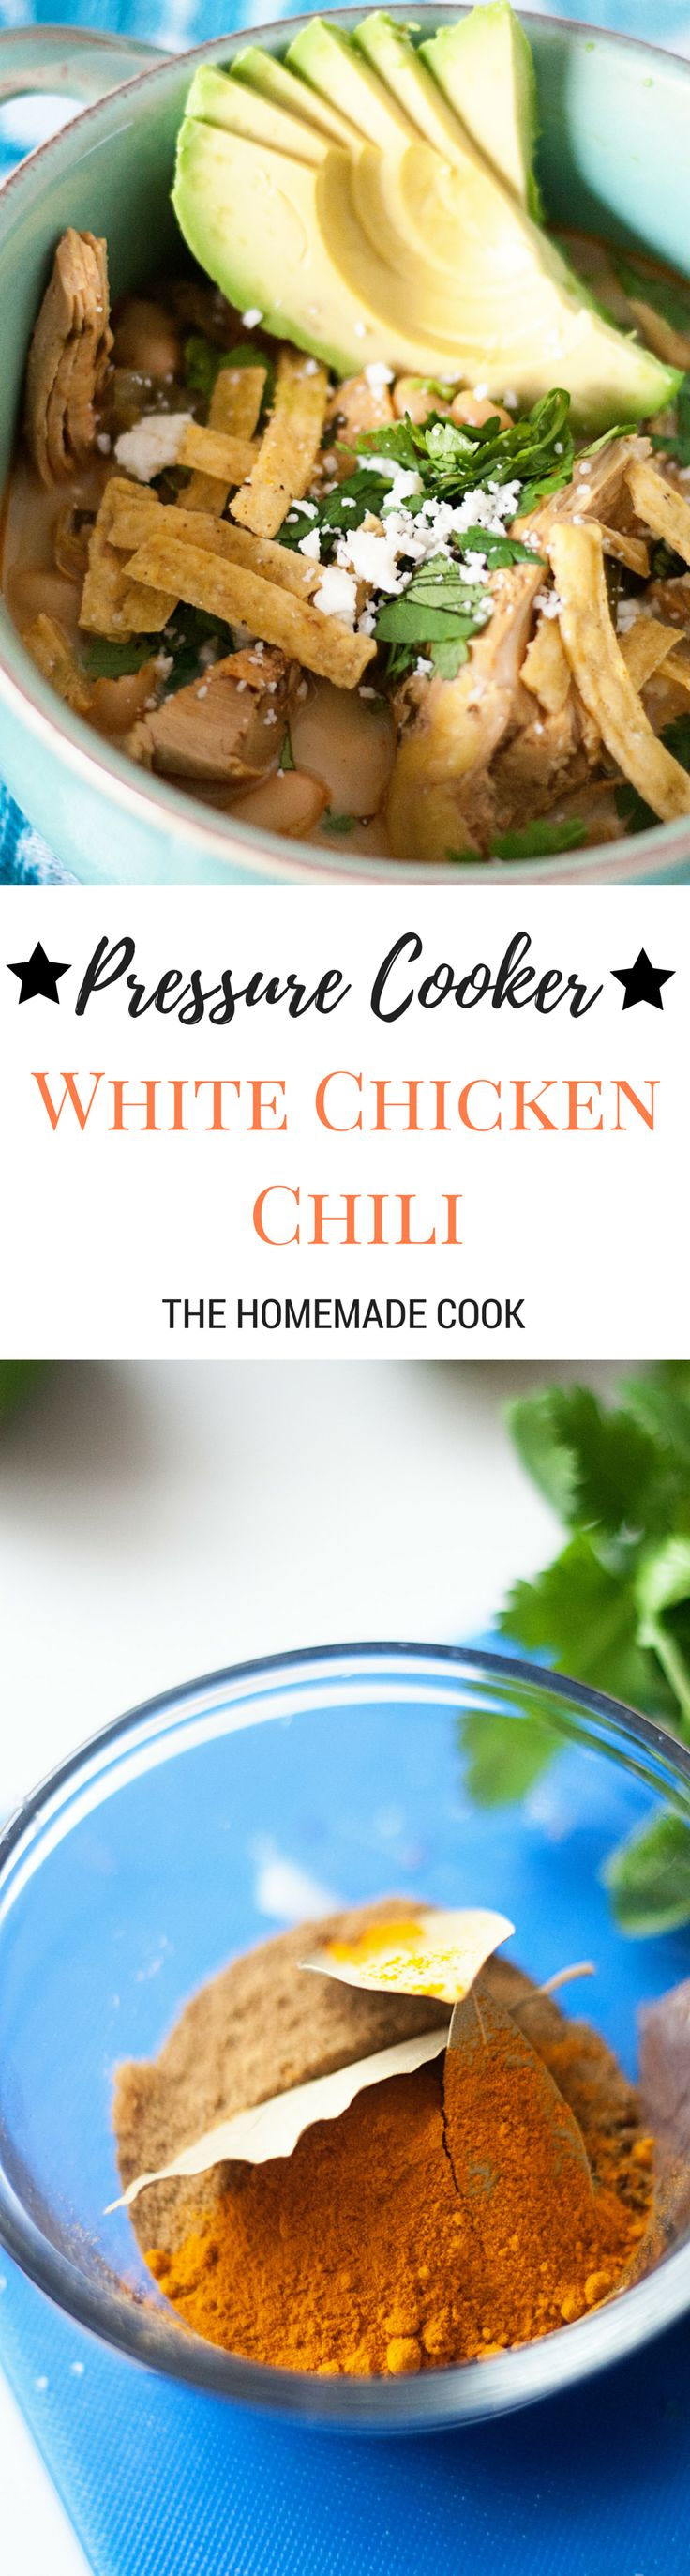 Pressure Cooker White Chicken Chili with Poblano Peppers